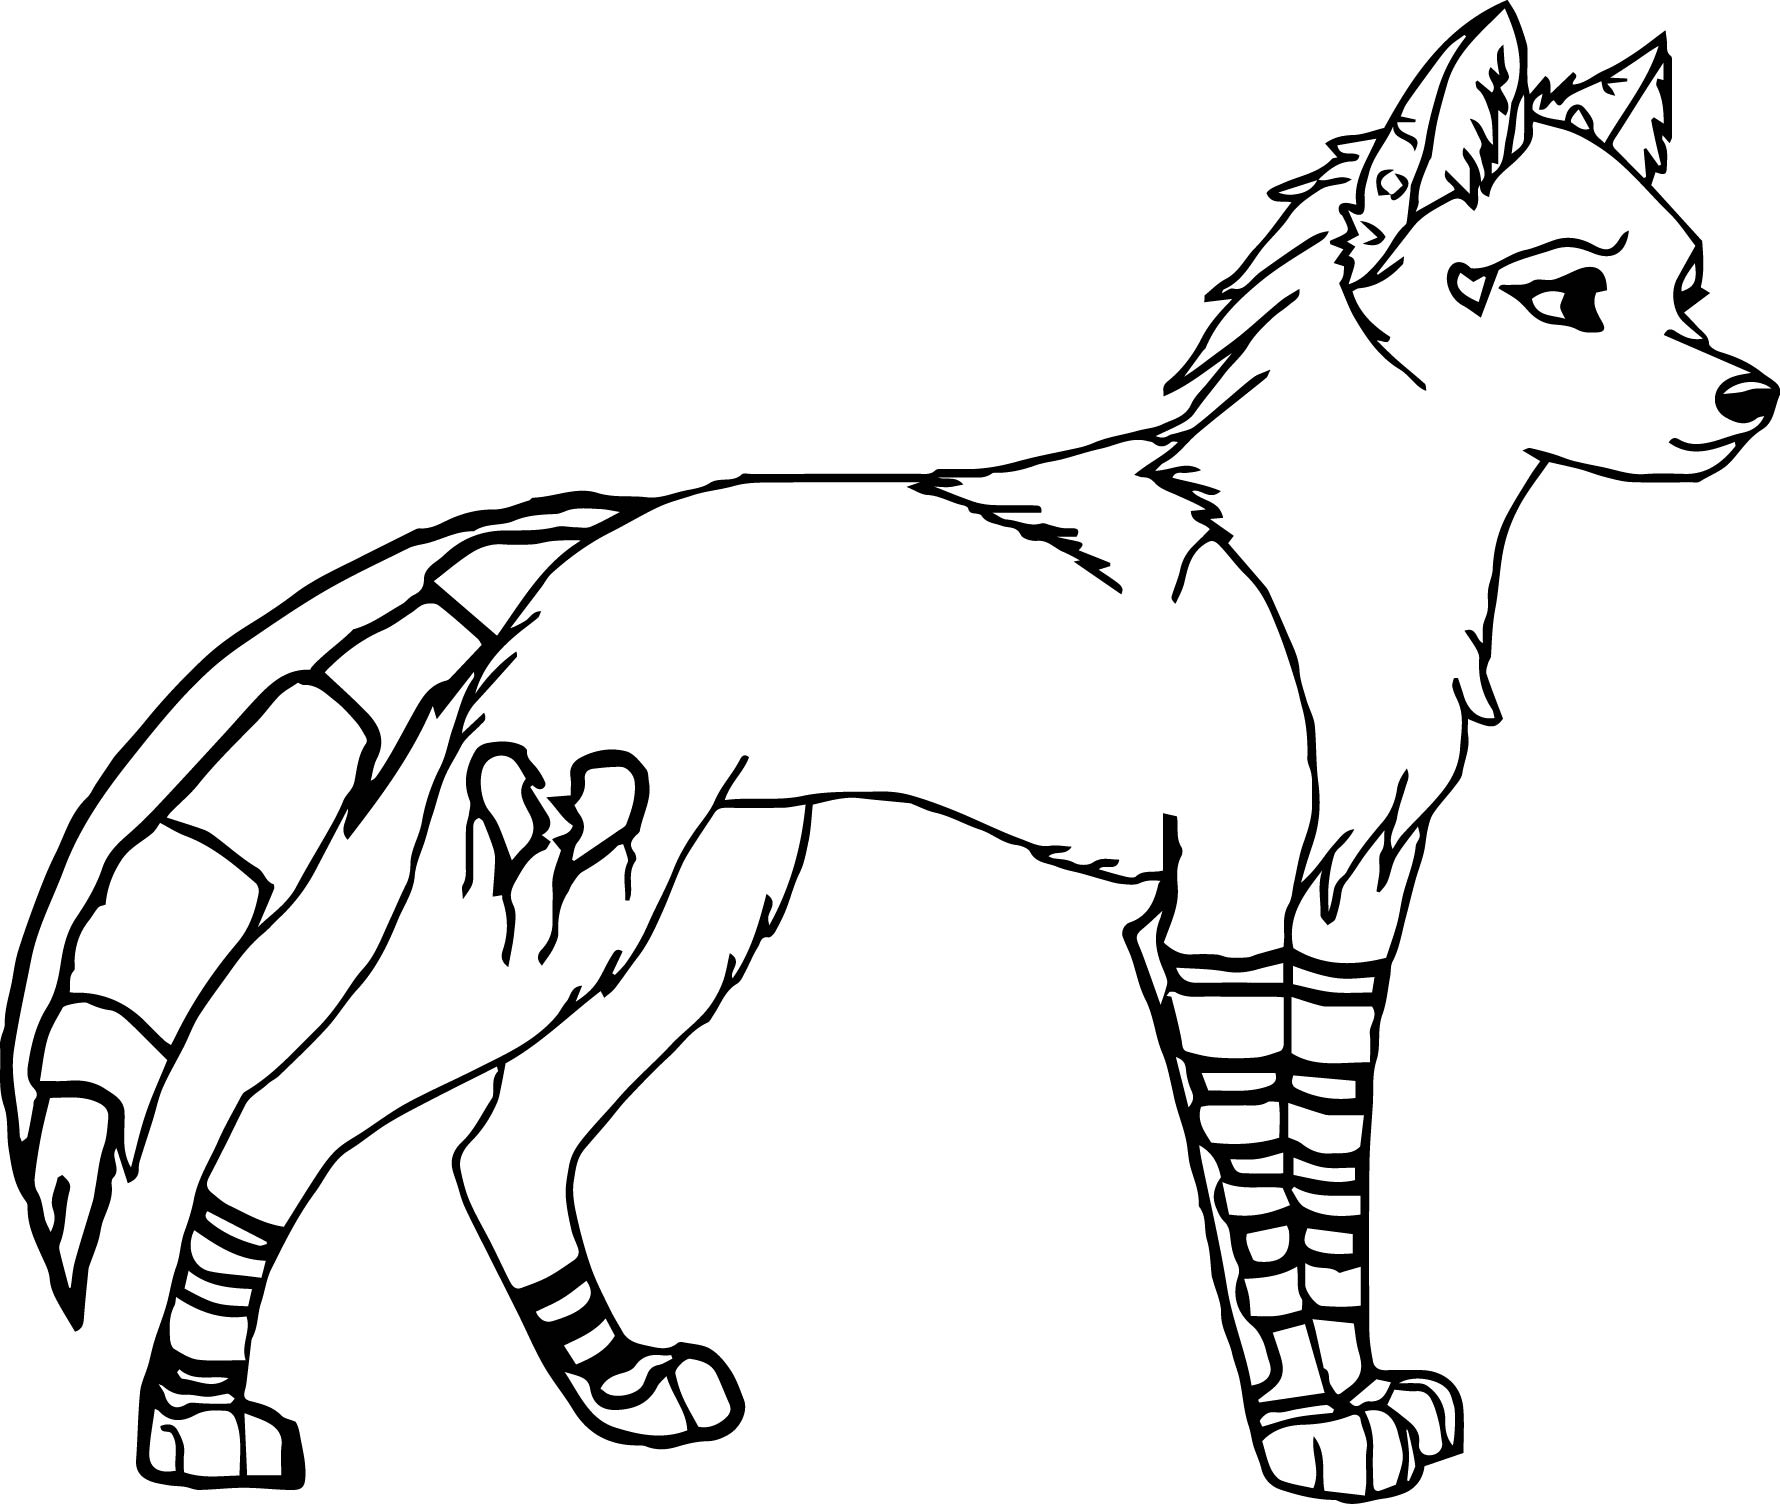 Wolf Coloring Pages Beauteous Female Wolf Coloring Pages  Wecoloringpage Decorating Design